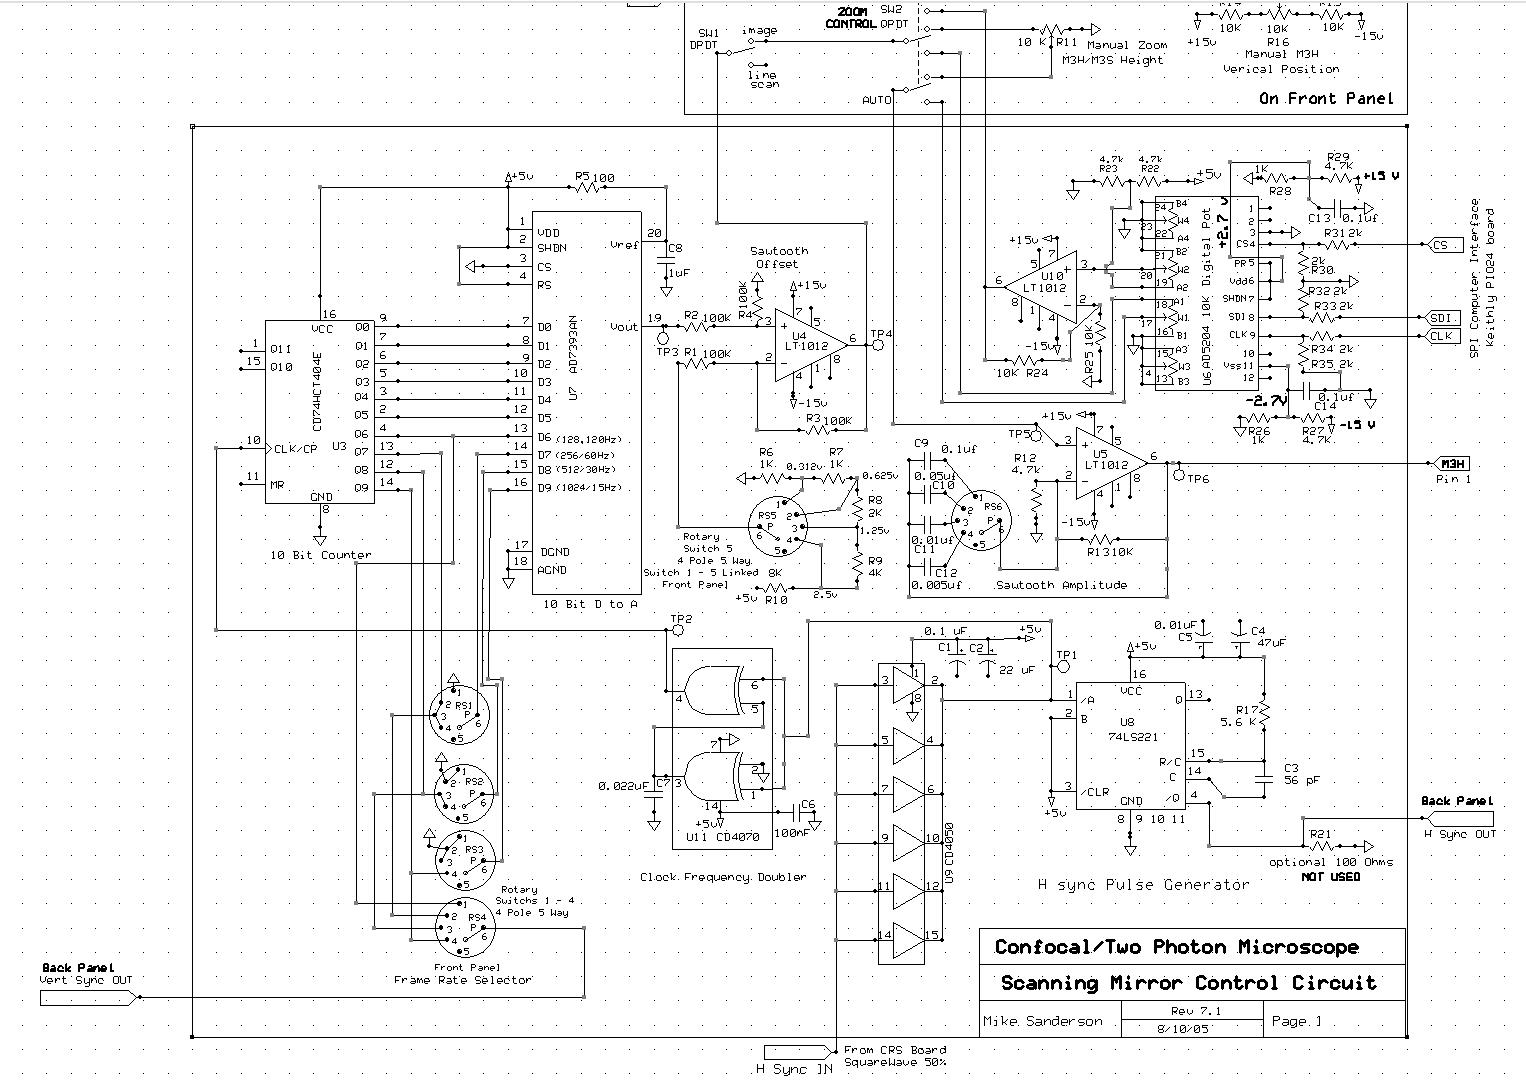 plex Wiring Schematics on automotive wiring harness diagram